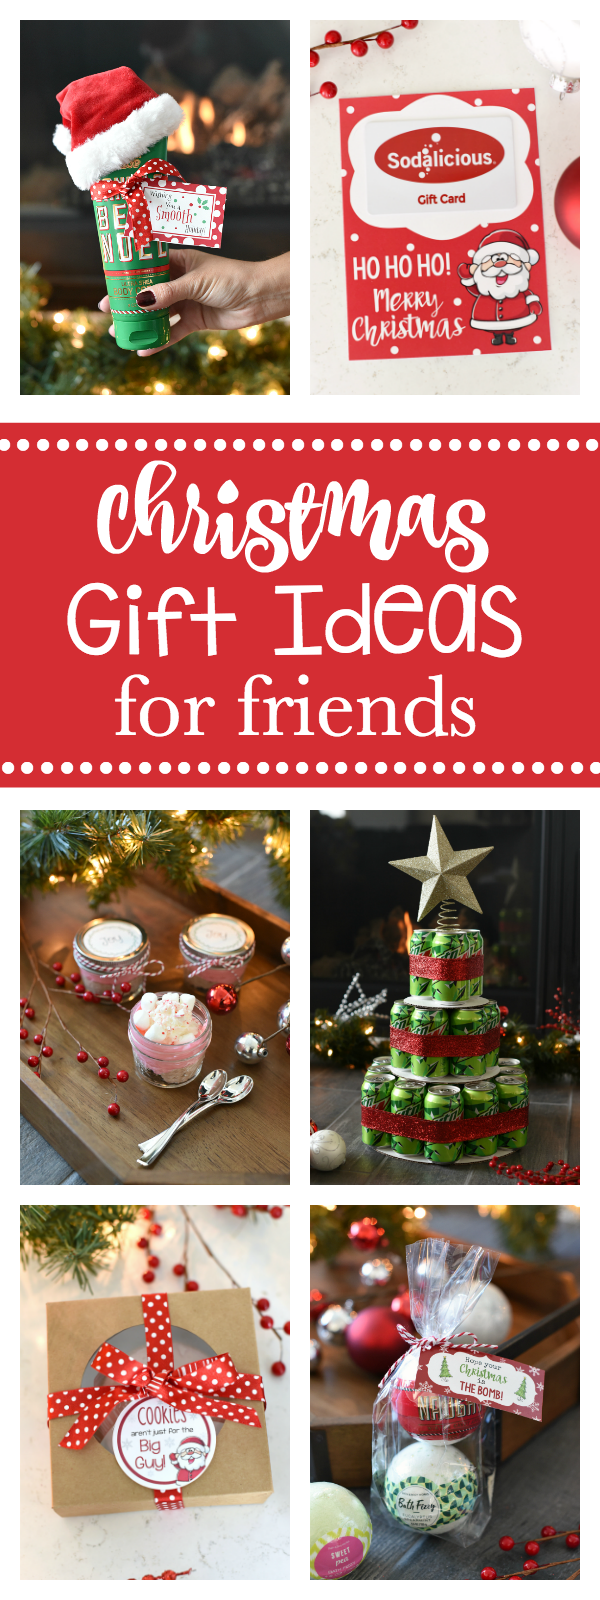 Good Gifts For Friends At Christmas Gift Ideas And Baskets